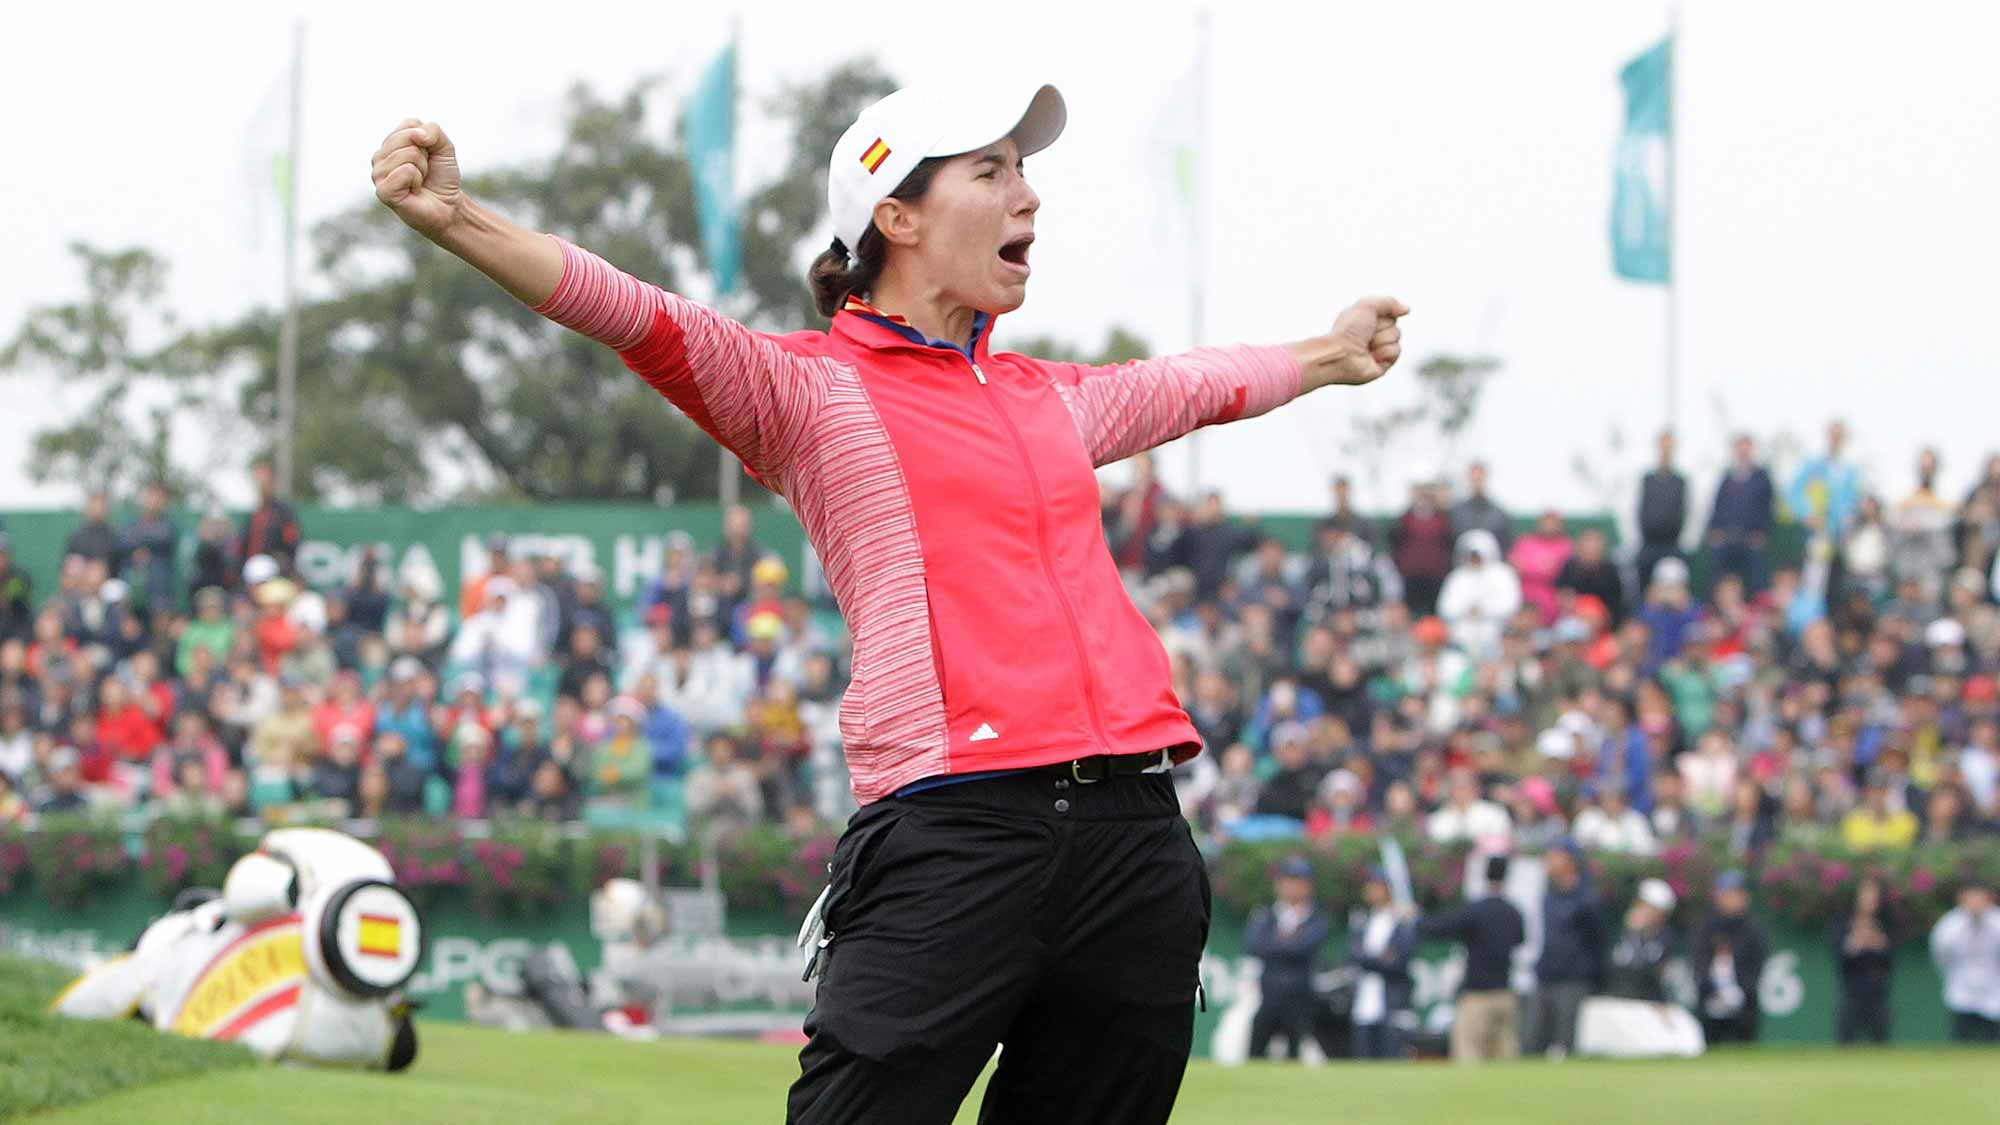 Carlota Ciganda of Spain celebrates after a winning putt on the 18th green during the final round of the LPGA KEB-Hana Bank Championship at the Sky 72 Golf Club Ocean Course